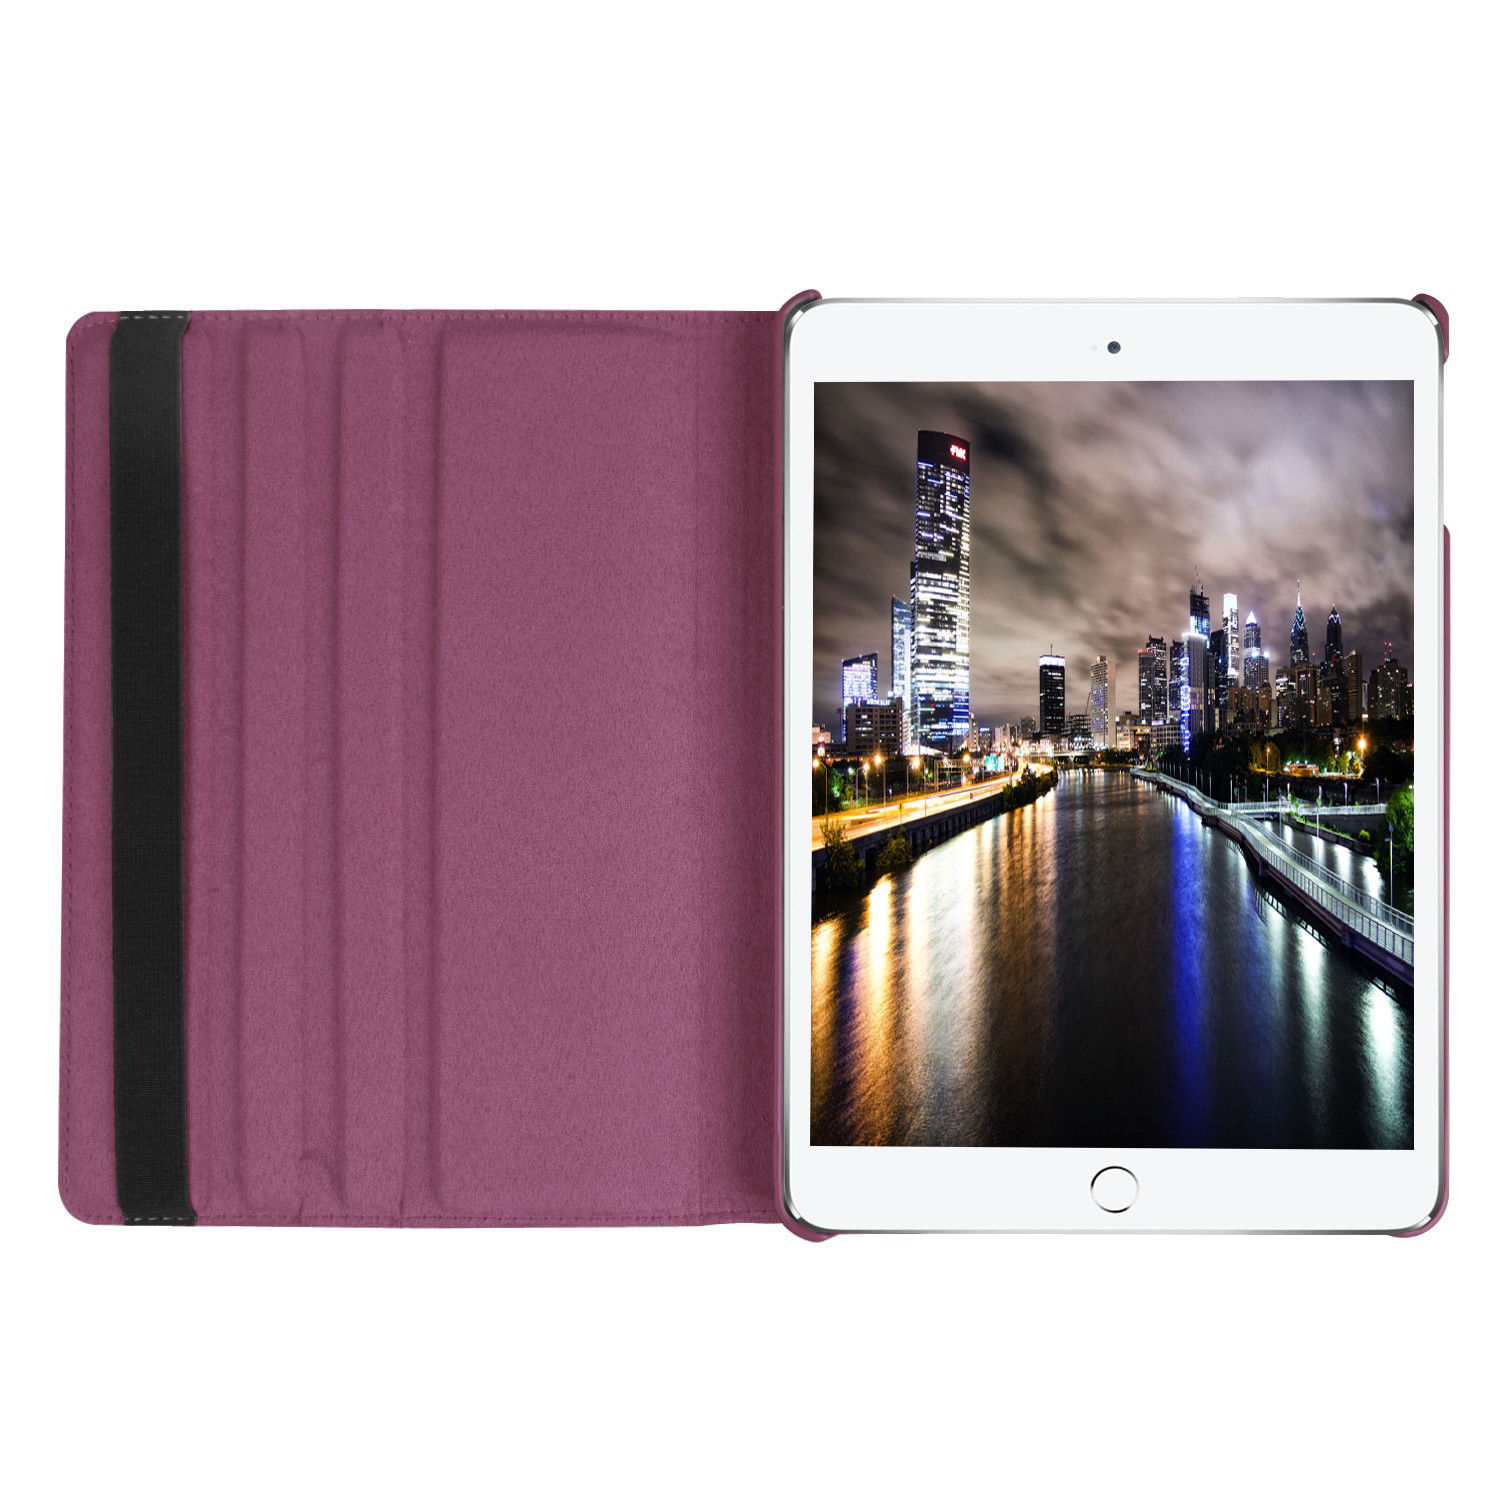 Custodia-per-Apple-iPad-Pro-2017-iPad-Air-3-10-5-Smart-Cover-Case-Custodia-Protettiva miniatura 77